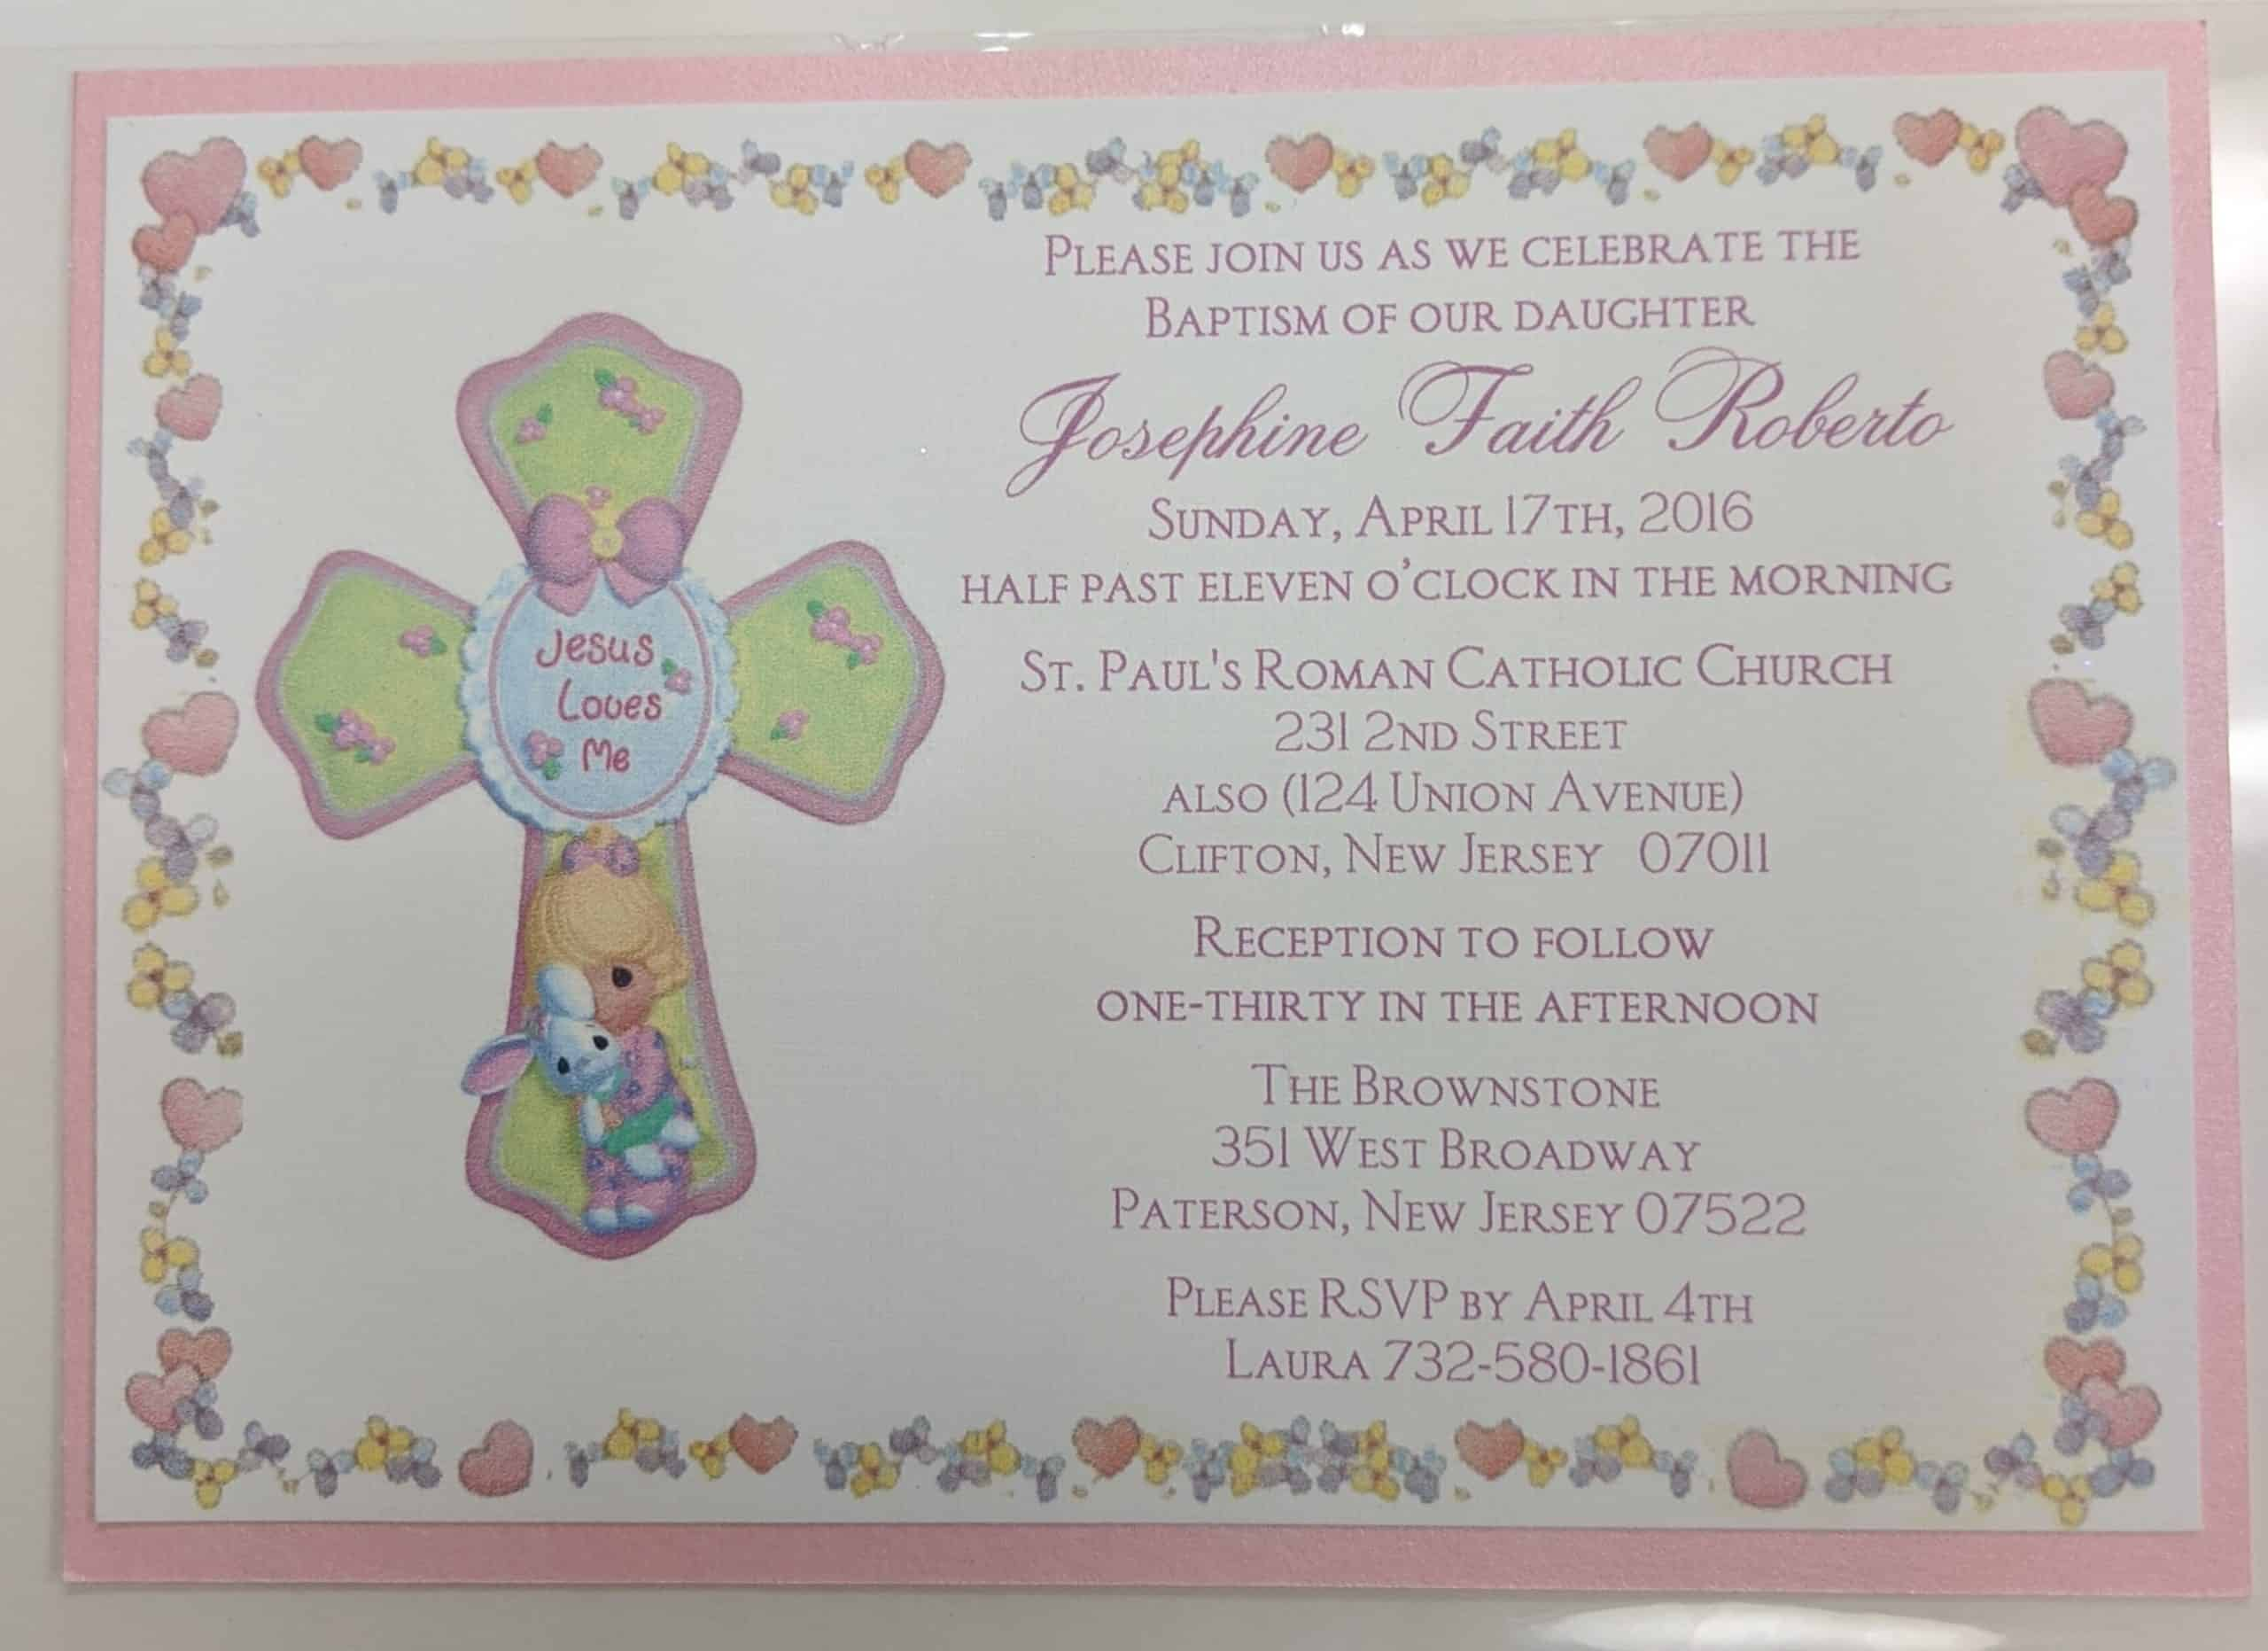 Baptism invitations in NJ